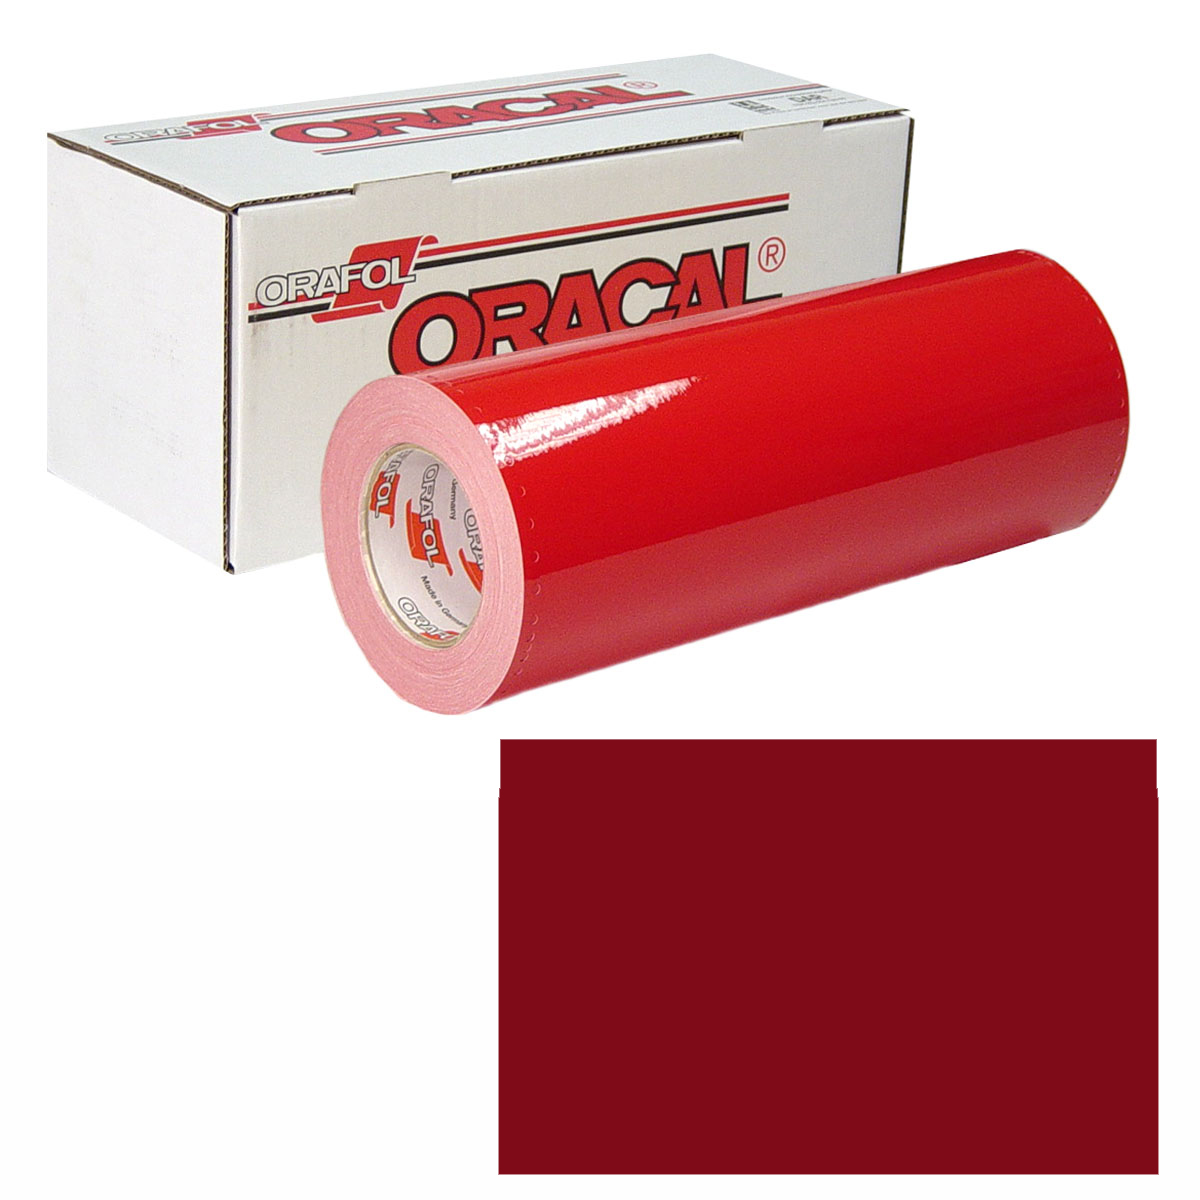 ORACAL 951M 15In X 50Yd 367 Red Metallic